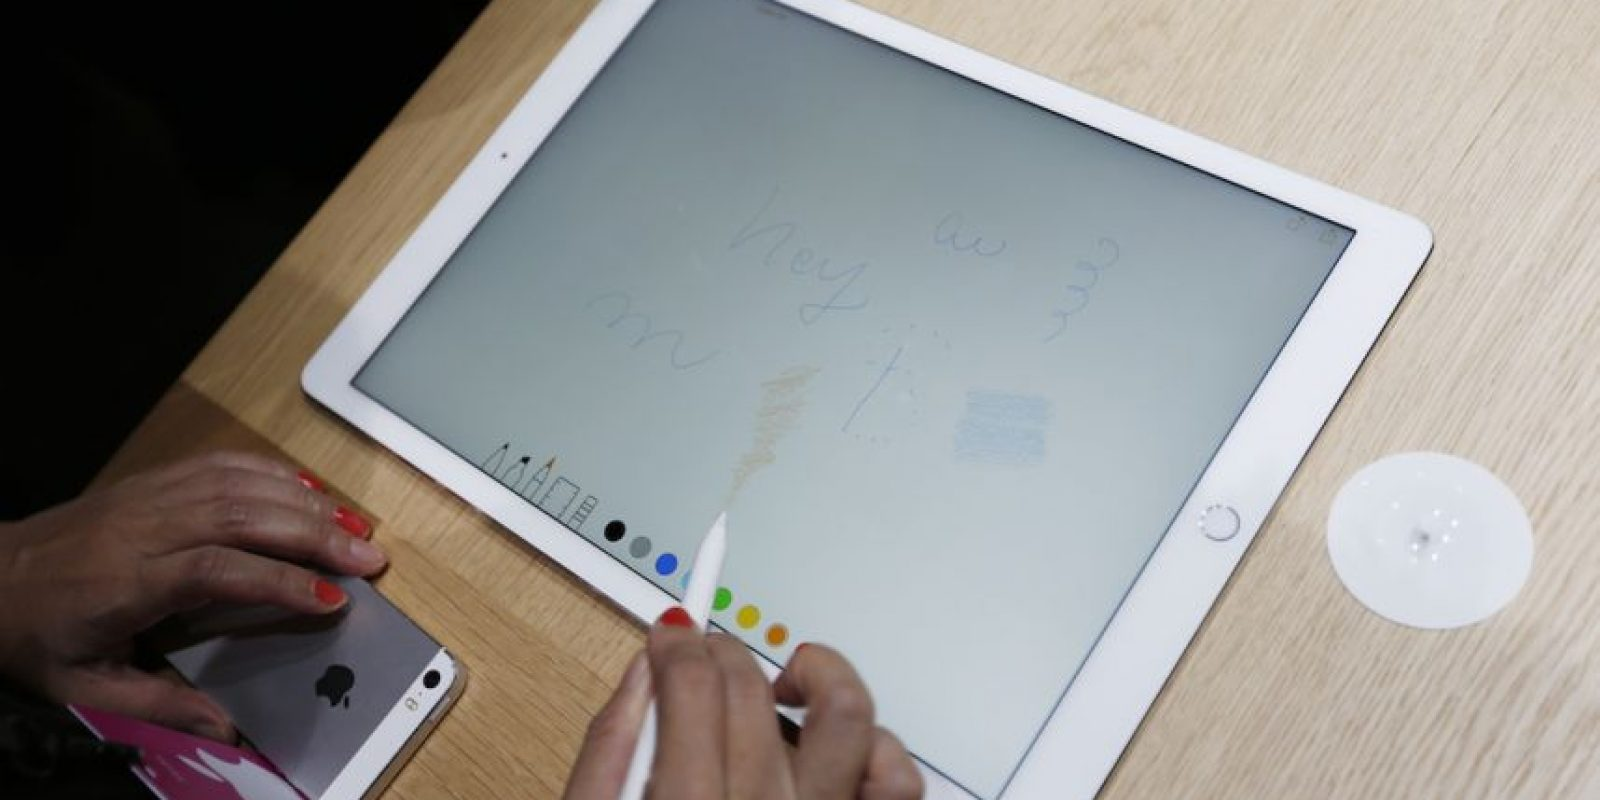 Apple Pencil ayudará en cuestiones de precisión. Foto: Getty Images